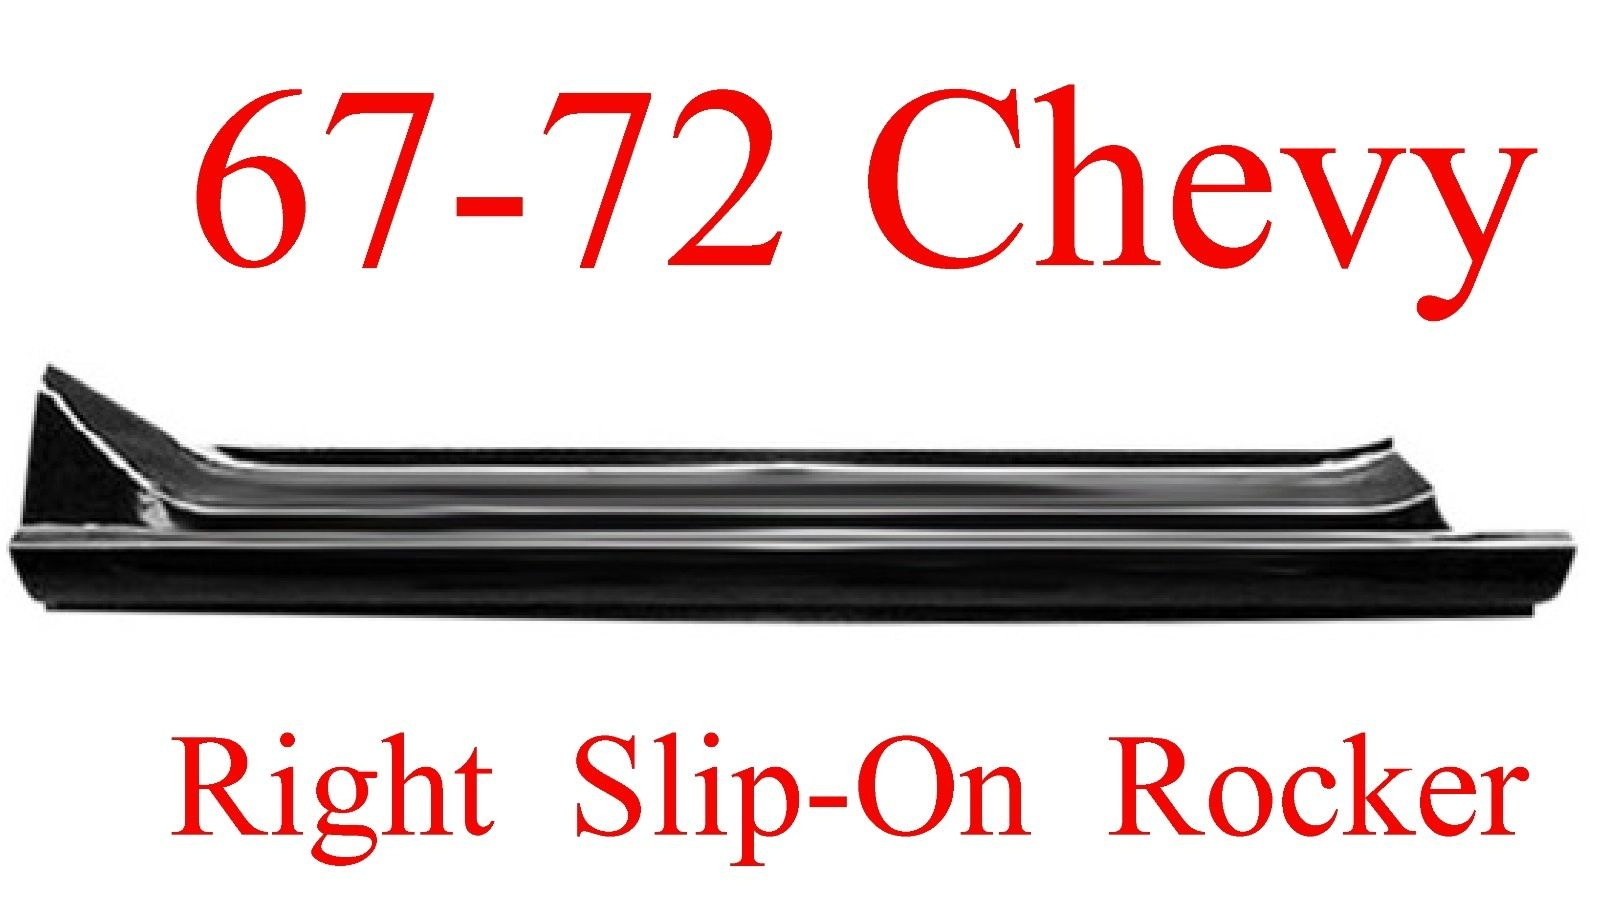 67-72 Chevy GMC Right Slip-On Rocker Panel